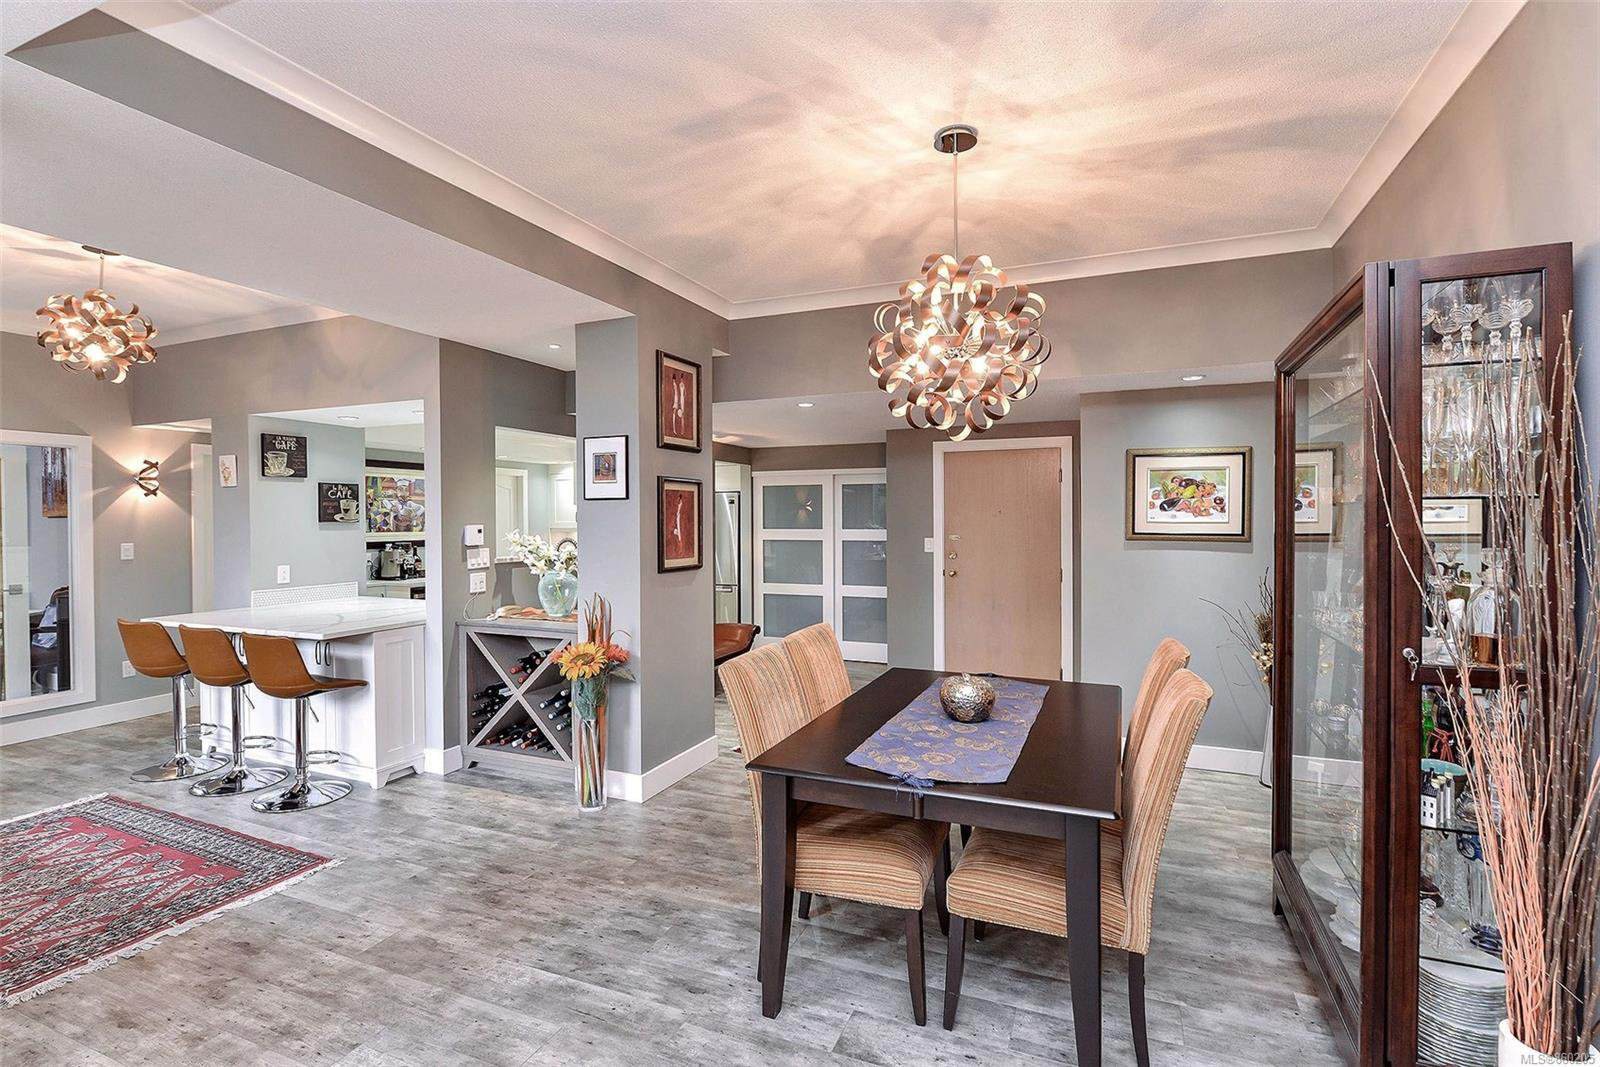 Welcome to 204 630 Montreal Street - a beautiful way to come home!